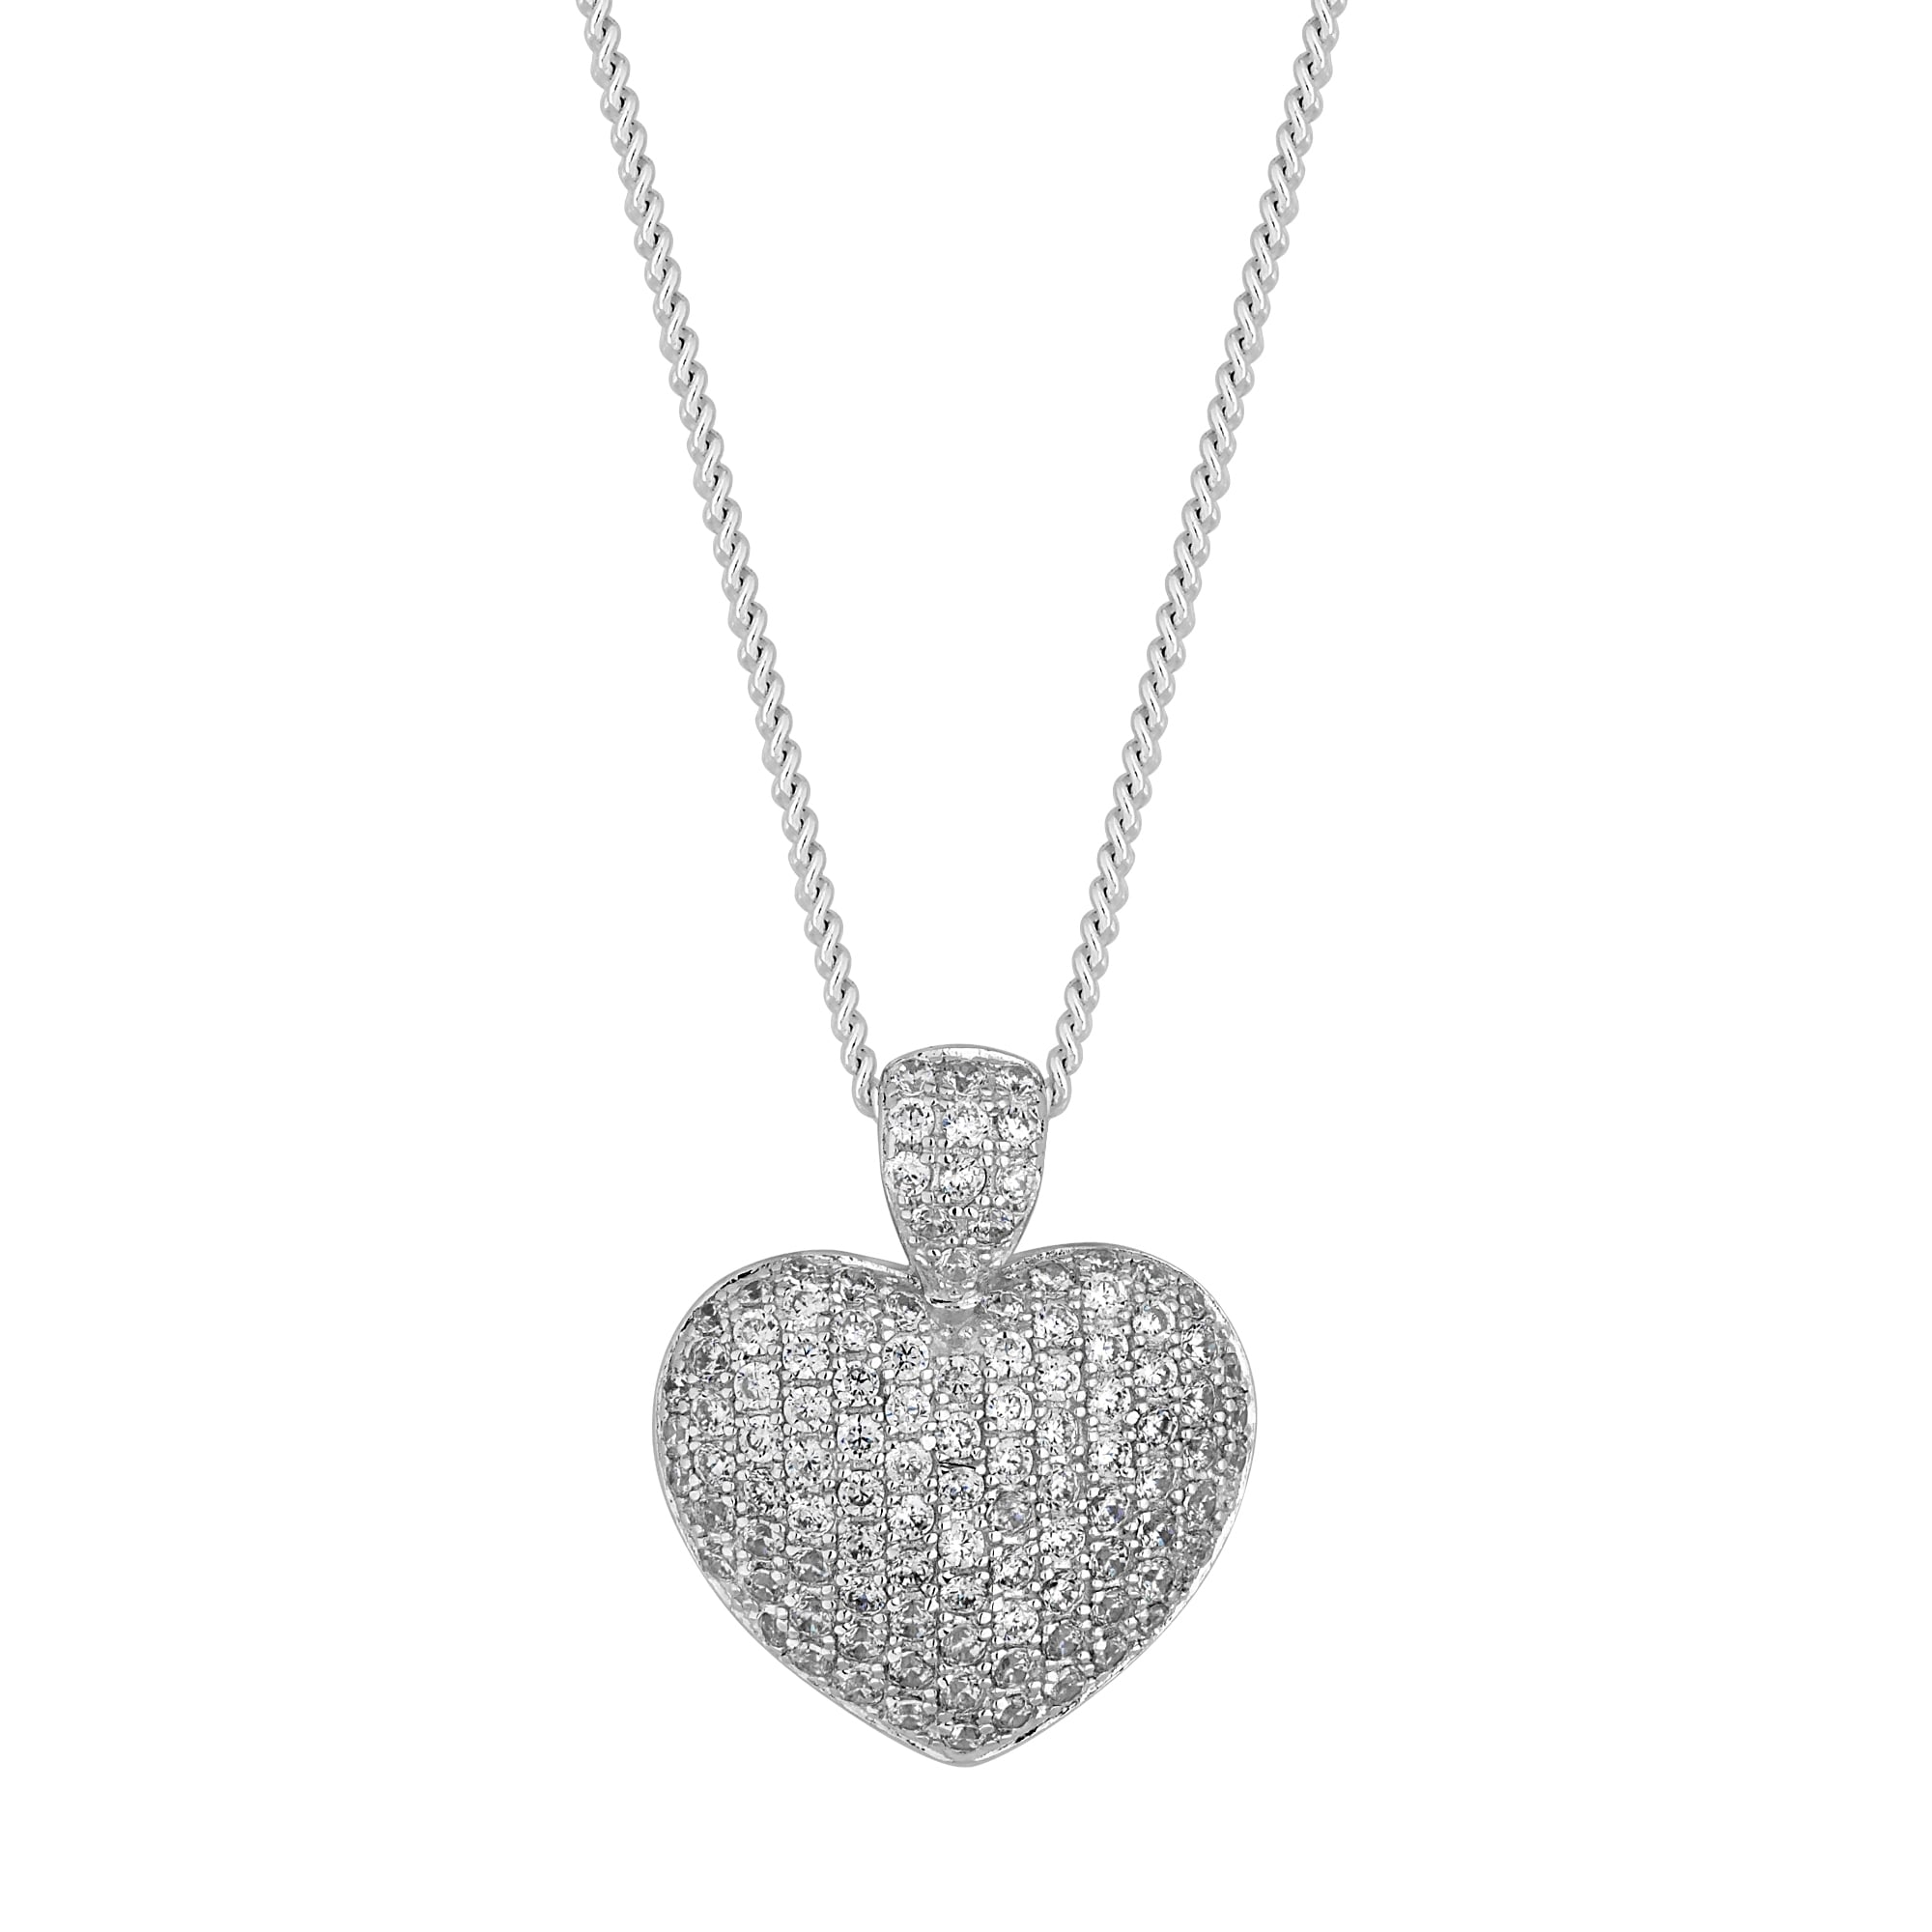 f02c39323 Simply Silver Sterling Pave Heart Pendant Necklace